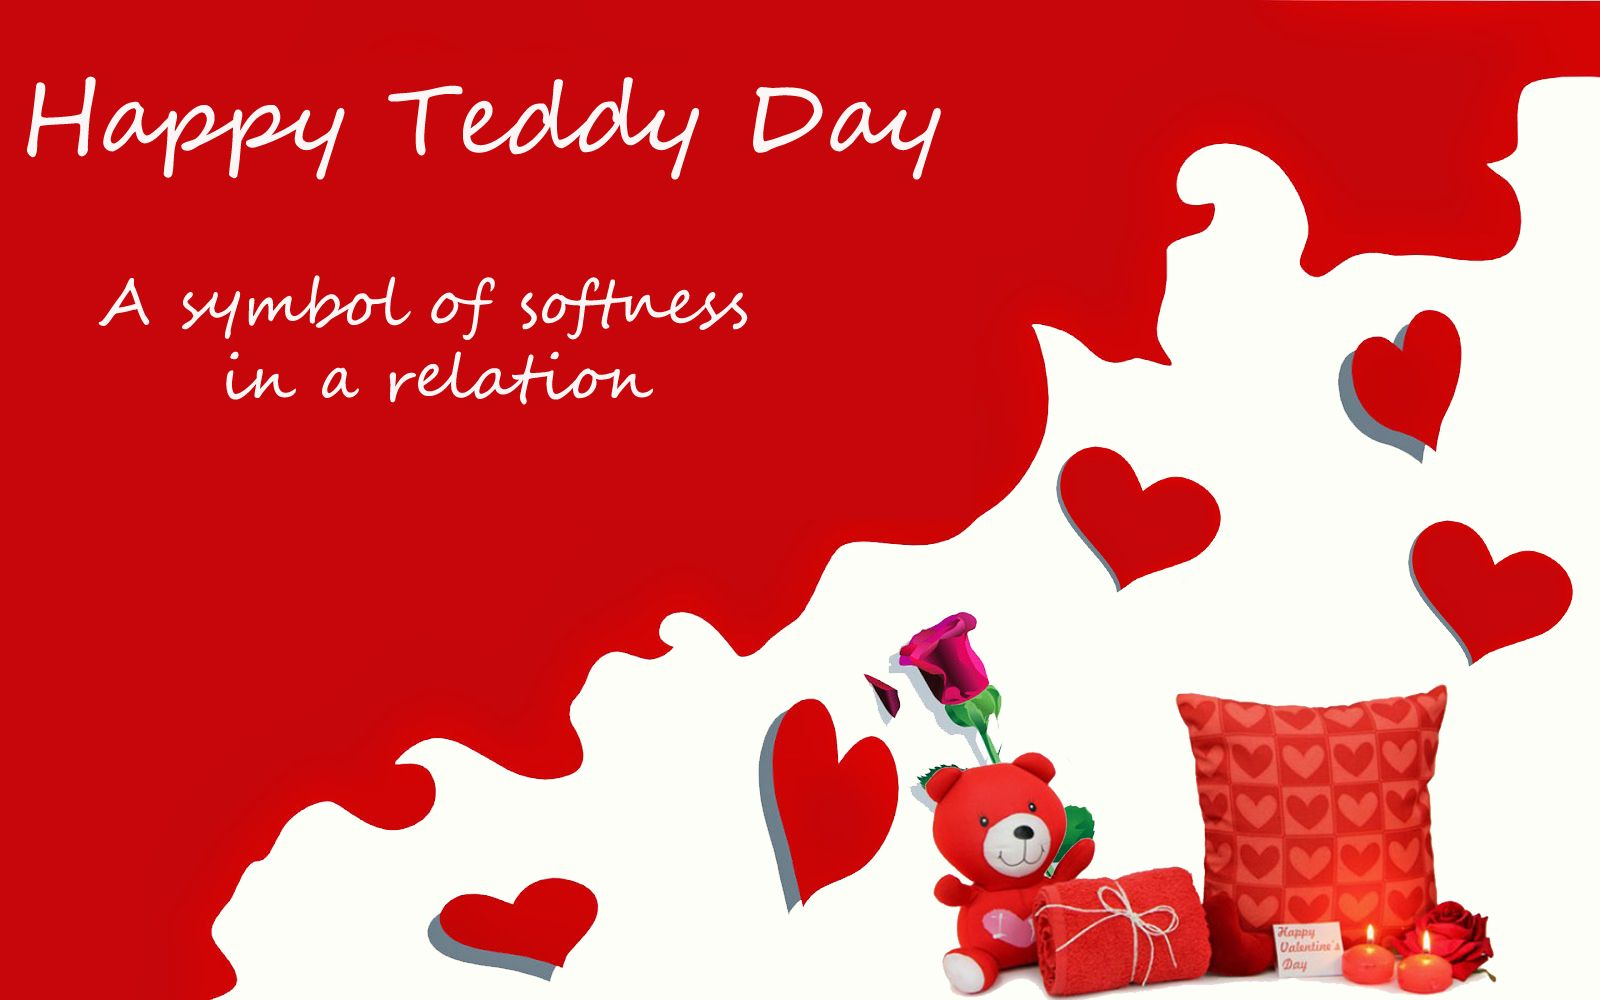 Happy Teddy Day A Symbol Of Softness In A Relationlentines Day